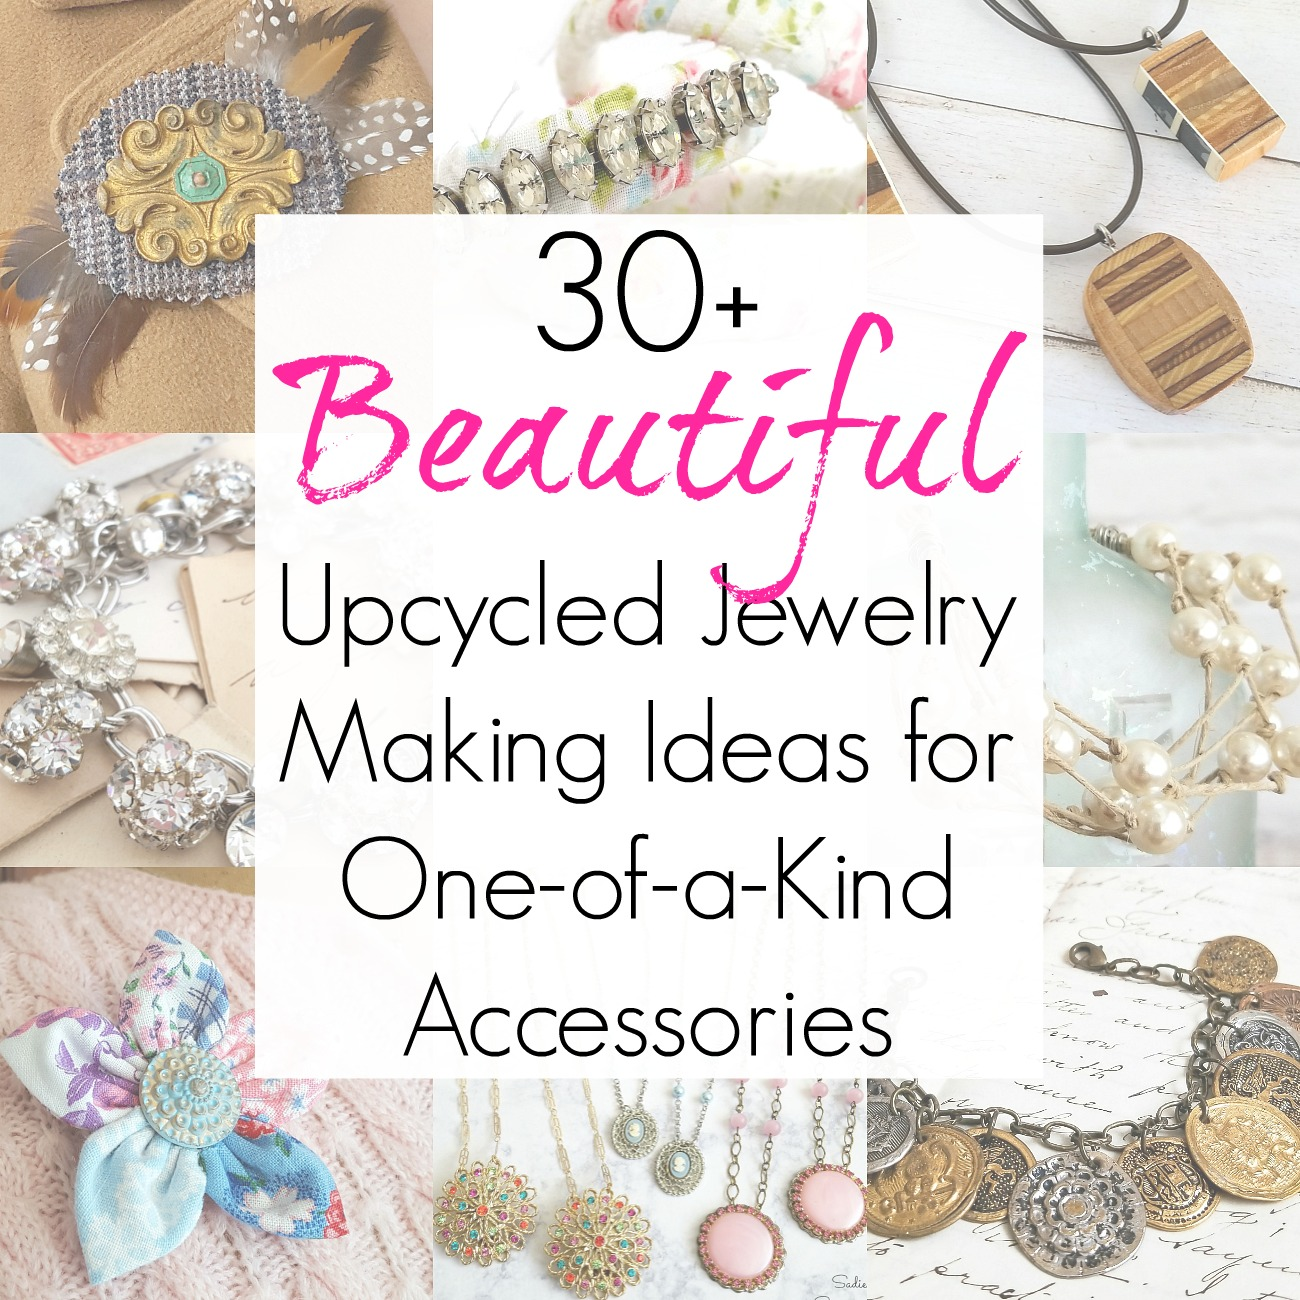 Upcycled Jewelry and Repurposed Jewelry Making Ideas